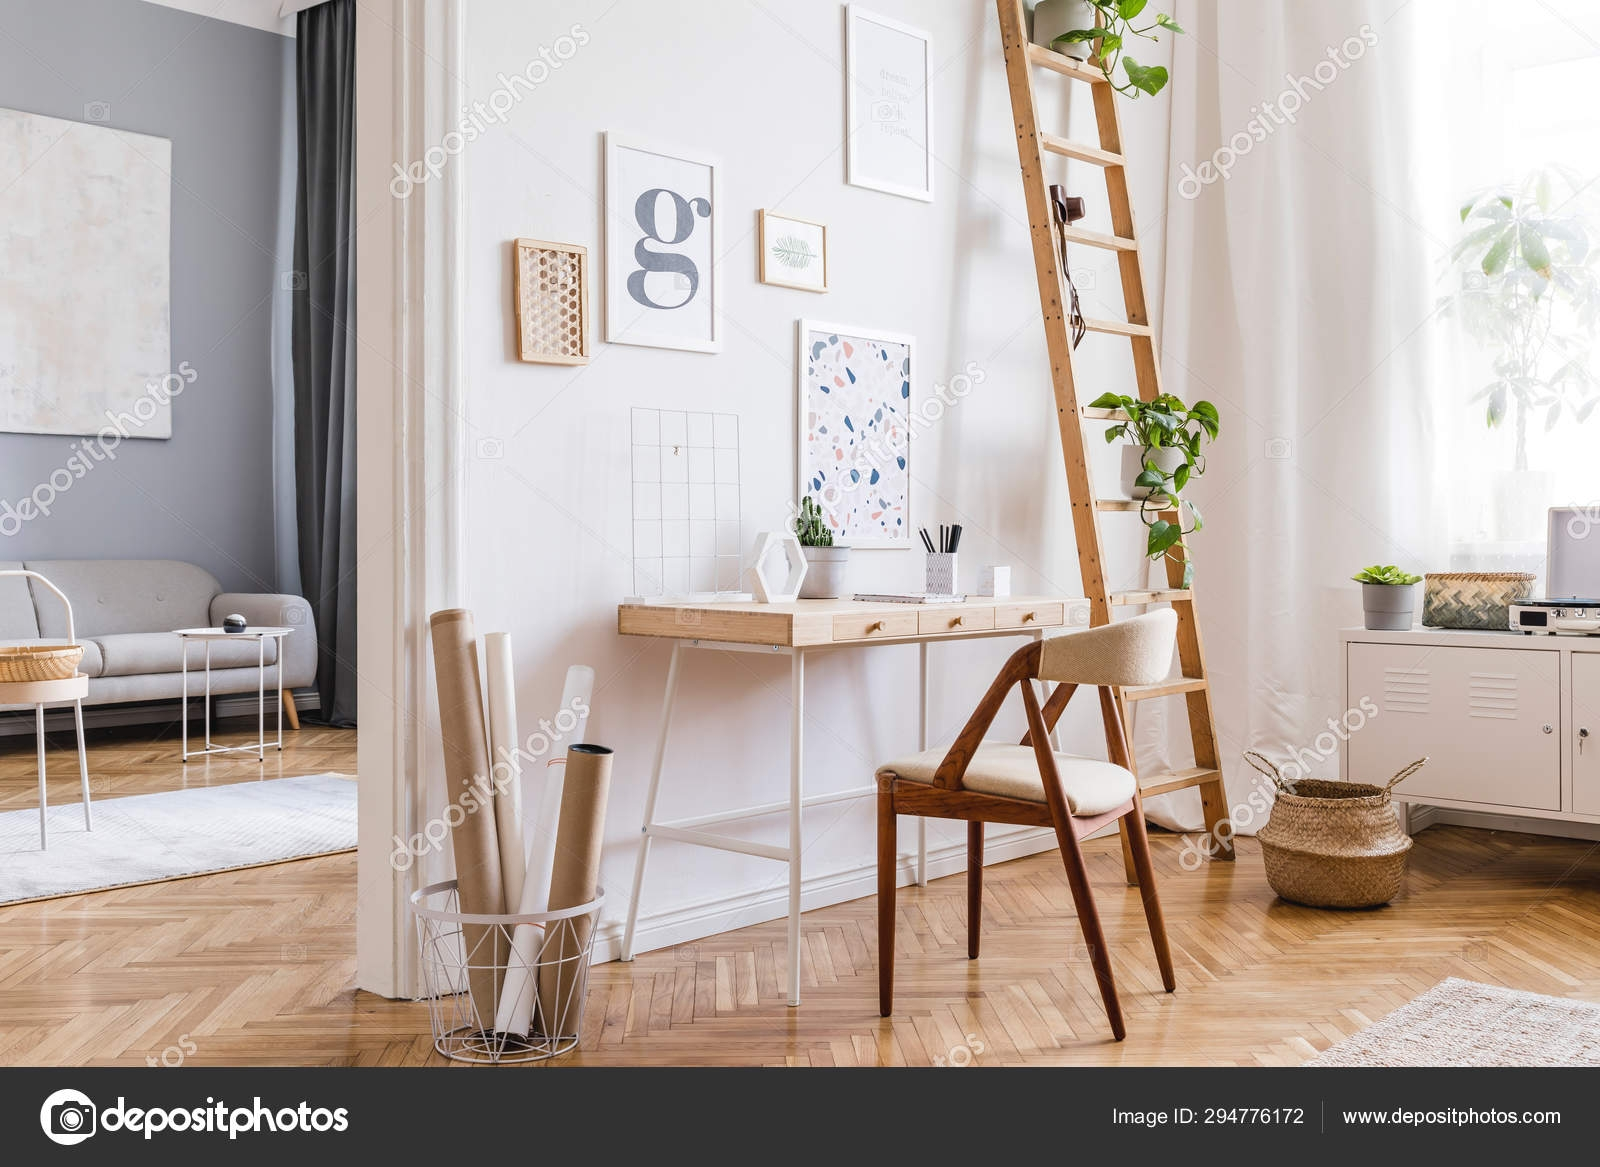 Design Scandinavian Interior Home Space Stylish Chair Wooden Desk   Ladder Design For Home   Decor   Space Saving   Room   Tiny House   Italian